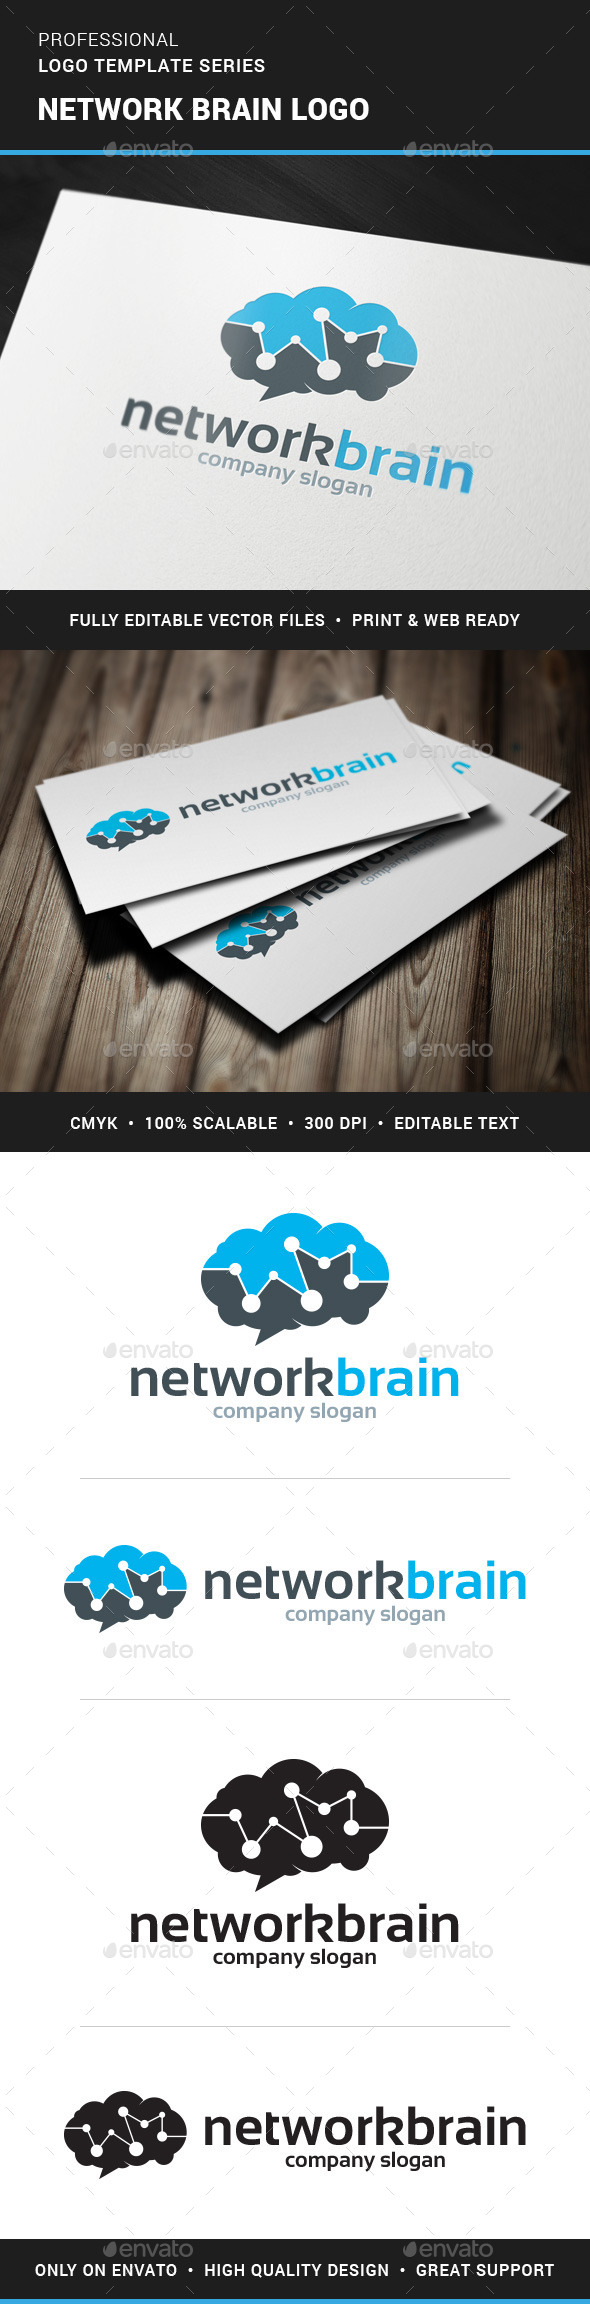 GraphicRiver Network Brain Logo Template 11369032